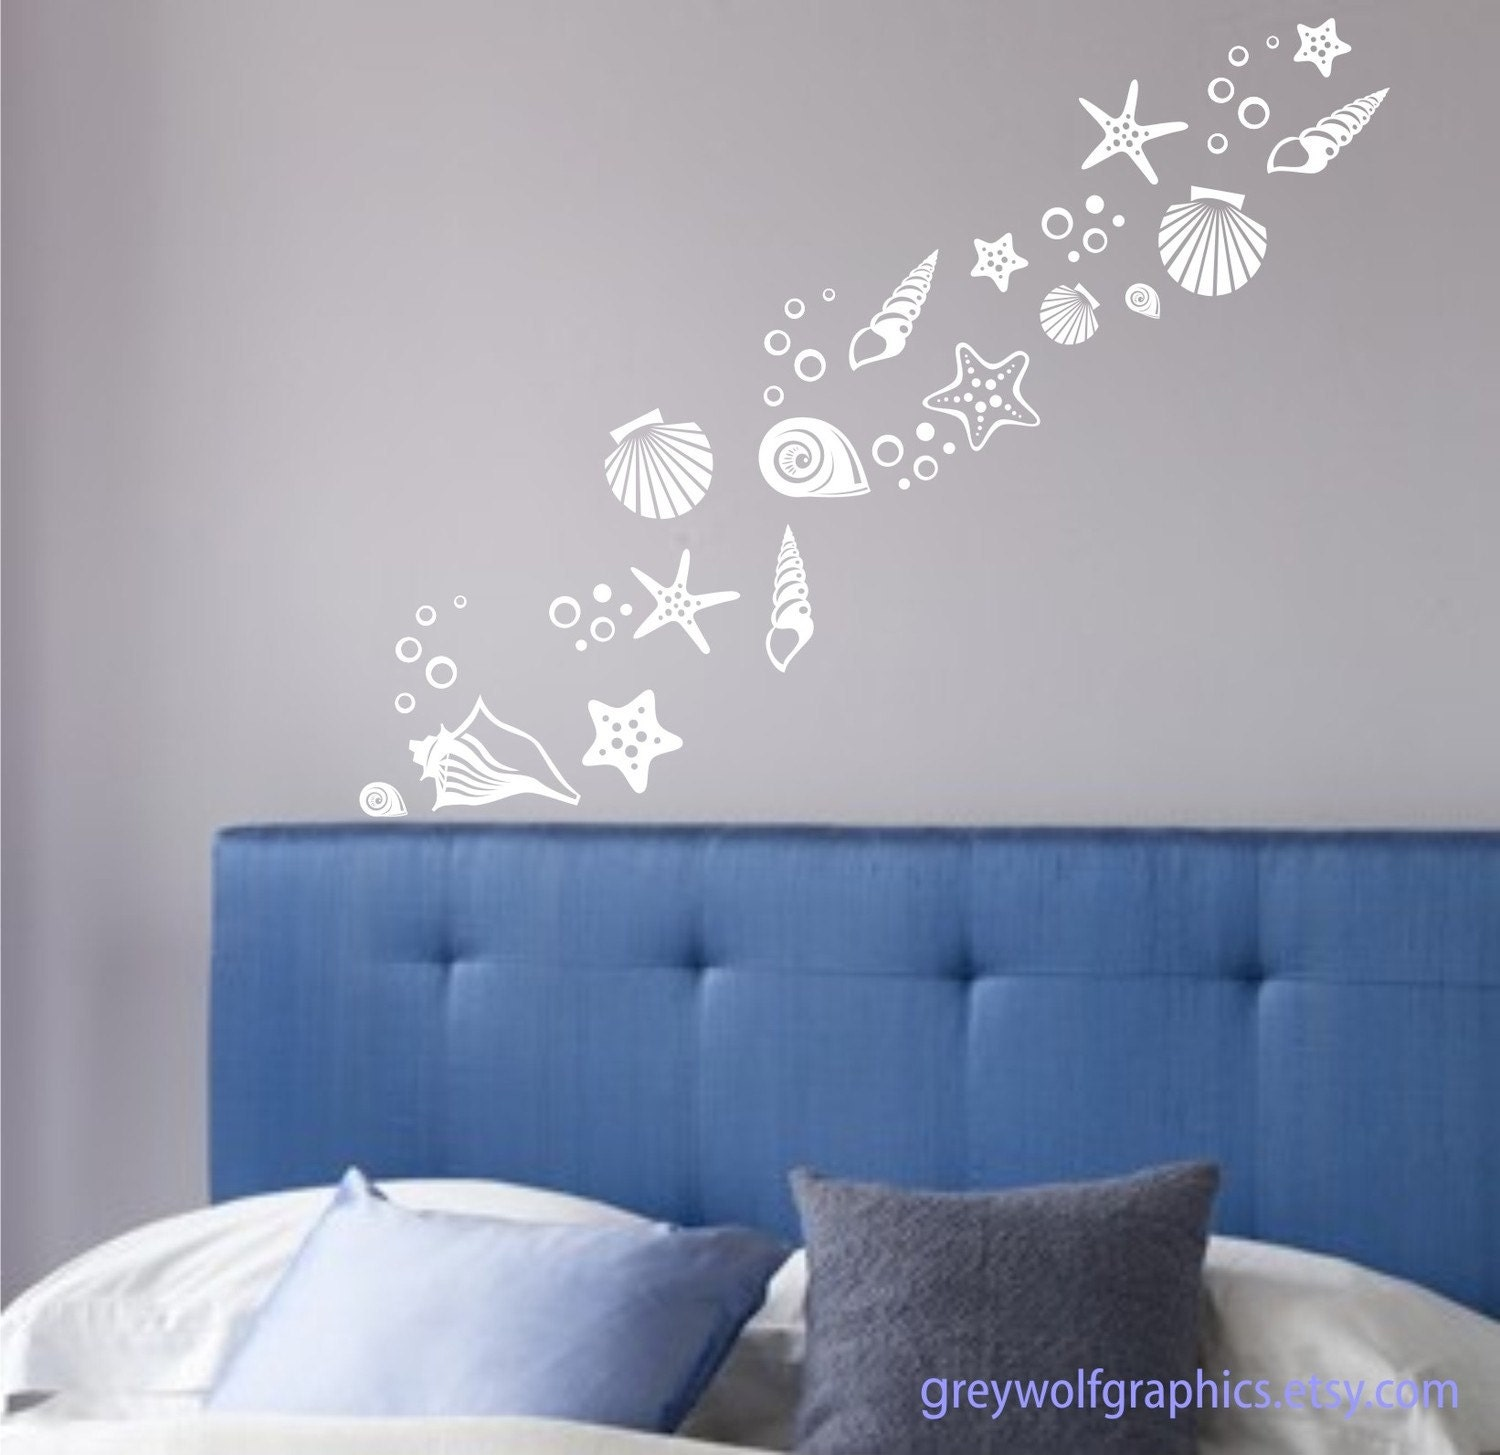 Themed Wall Decor 28 Images Winda 7